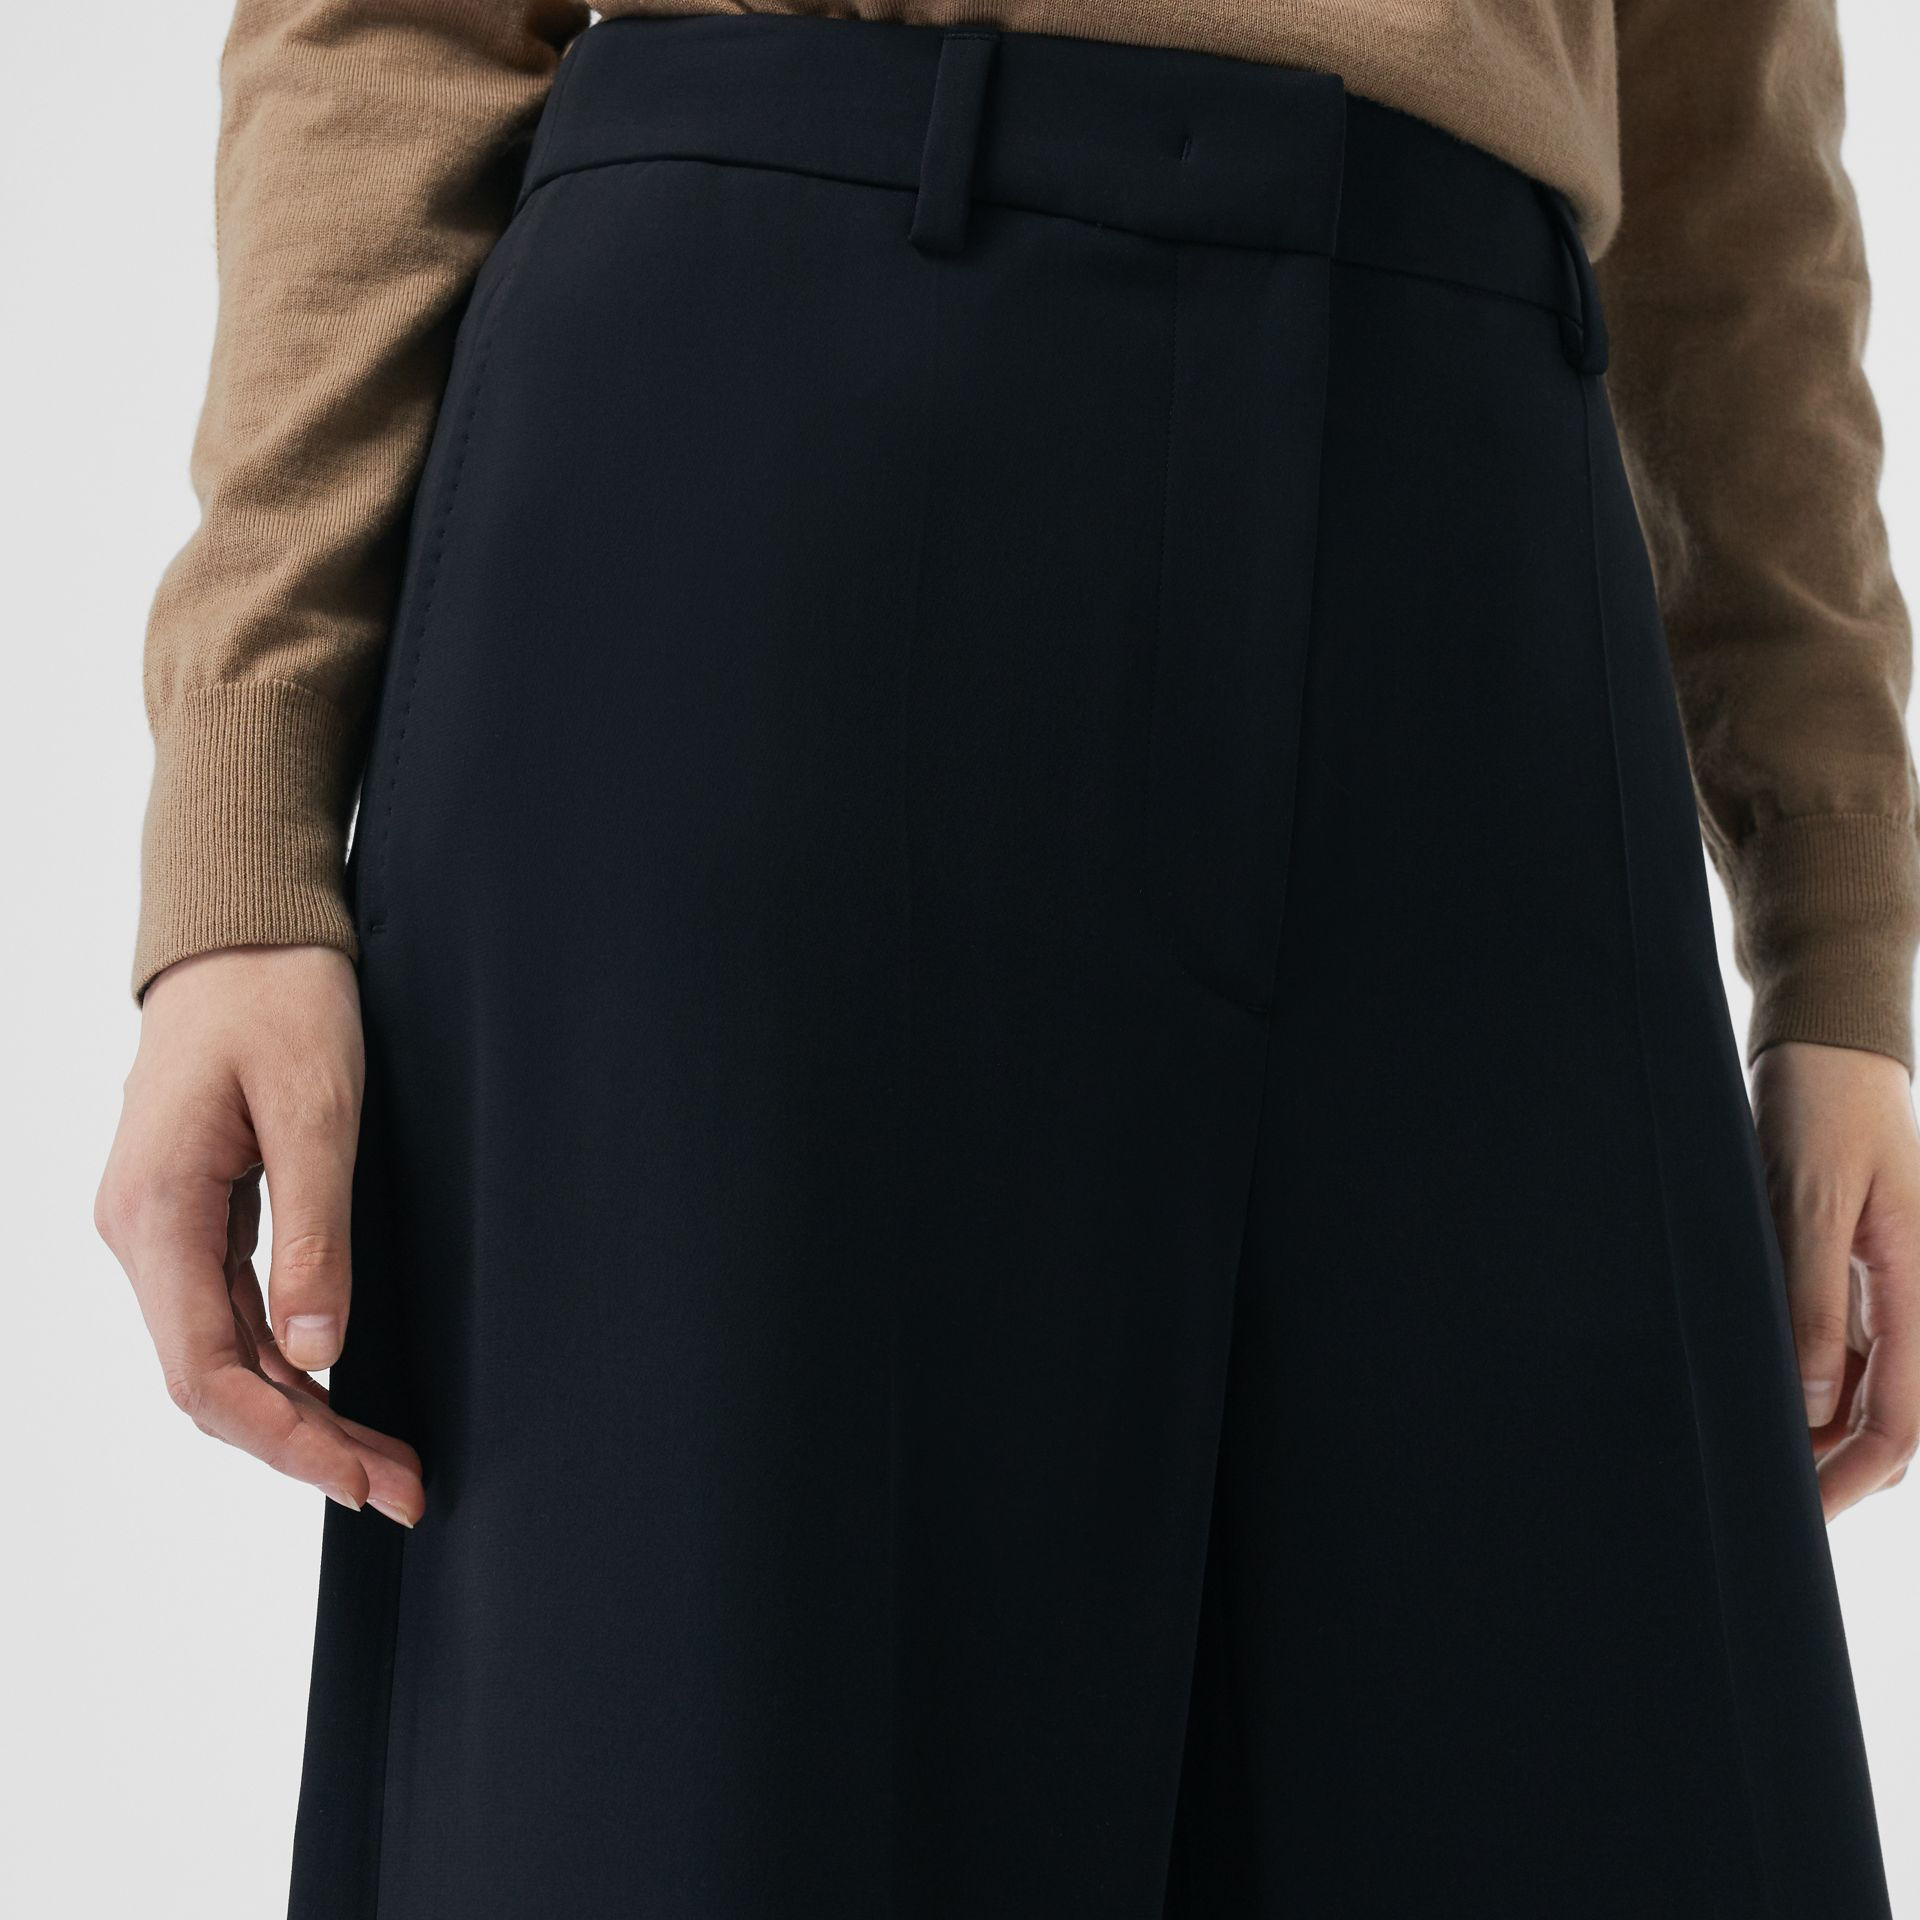 Silk Wool Tailored Culottes in Black - Women | Burberry - gallery image 1